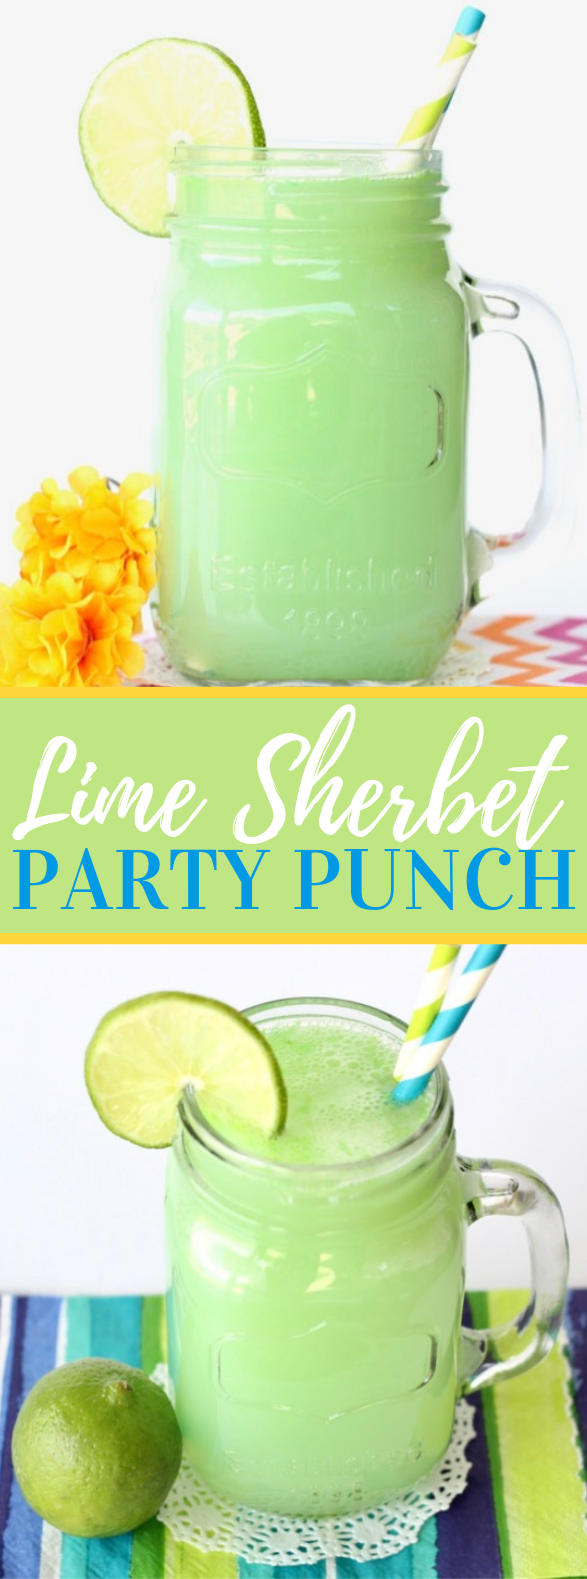 Lime Sherbet Party Punch Recipe! {3 Ingredients} #drinks #partydrink